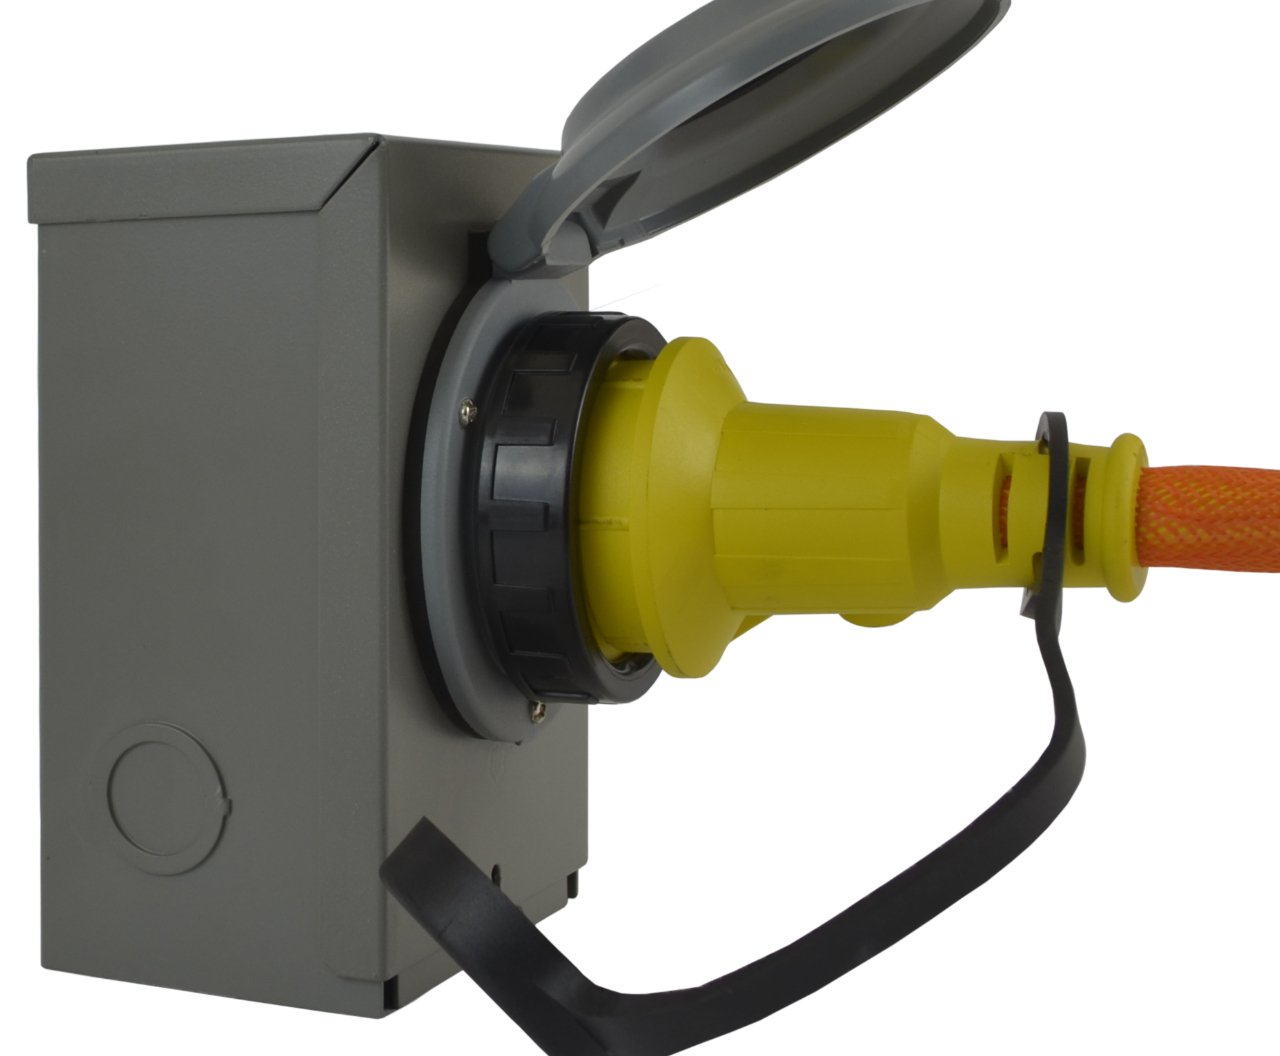 Conntek GIBL530-050 Duo-RainSeal Kit 30 Amp Transfer Switch Cord/Generator Extension Cord with Inlet Box, 50' by Conntek (Image #2)